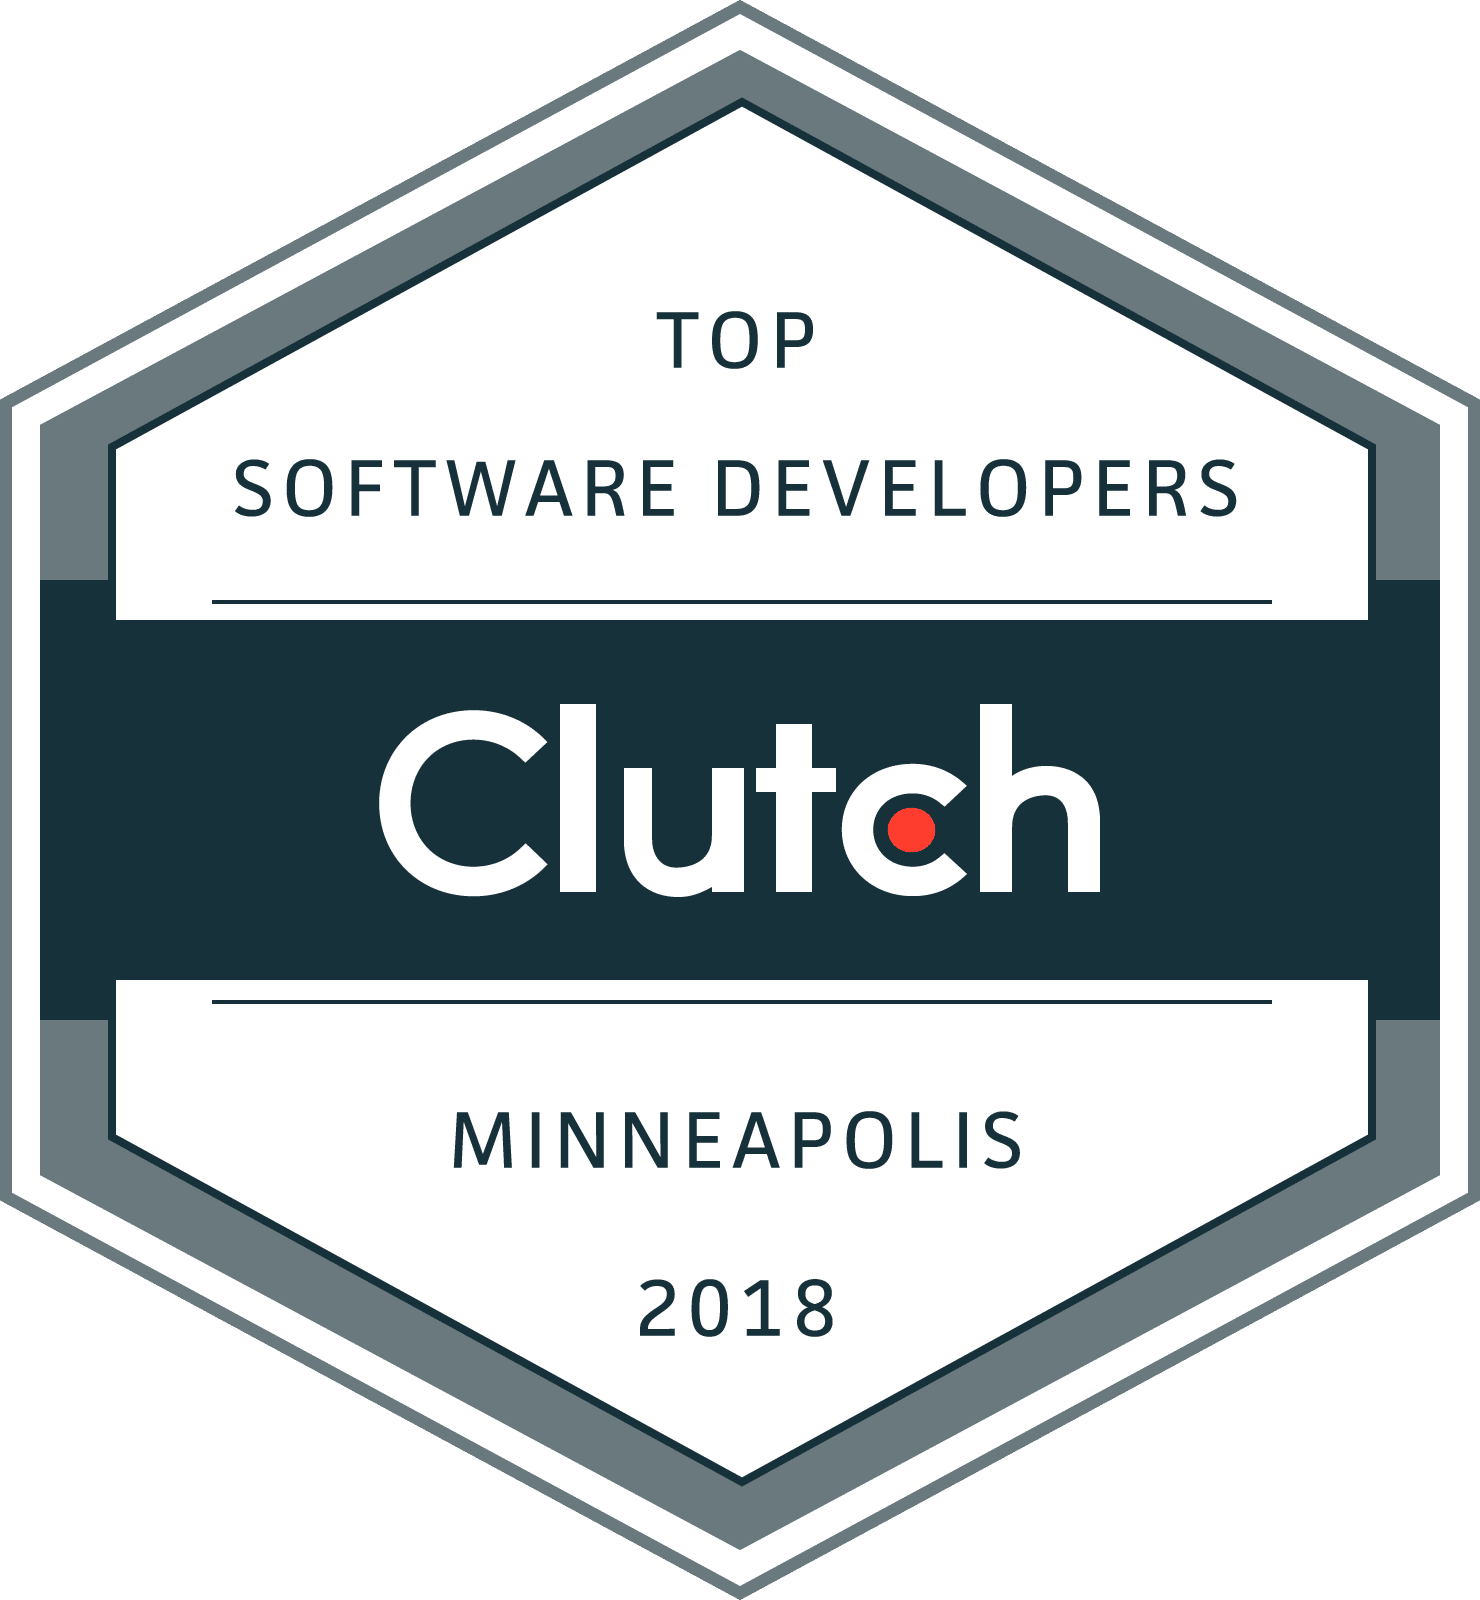 Top Salesforce CRM Development Firm